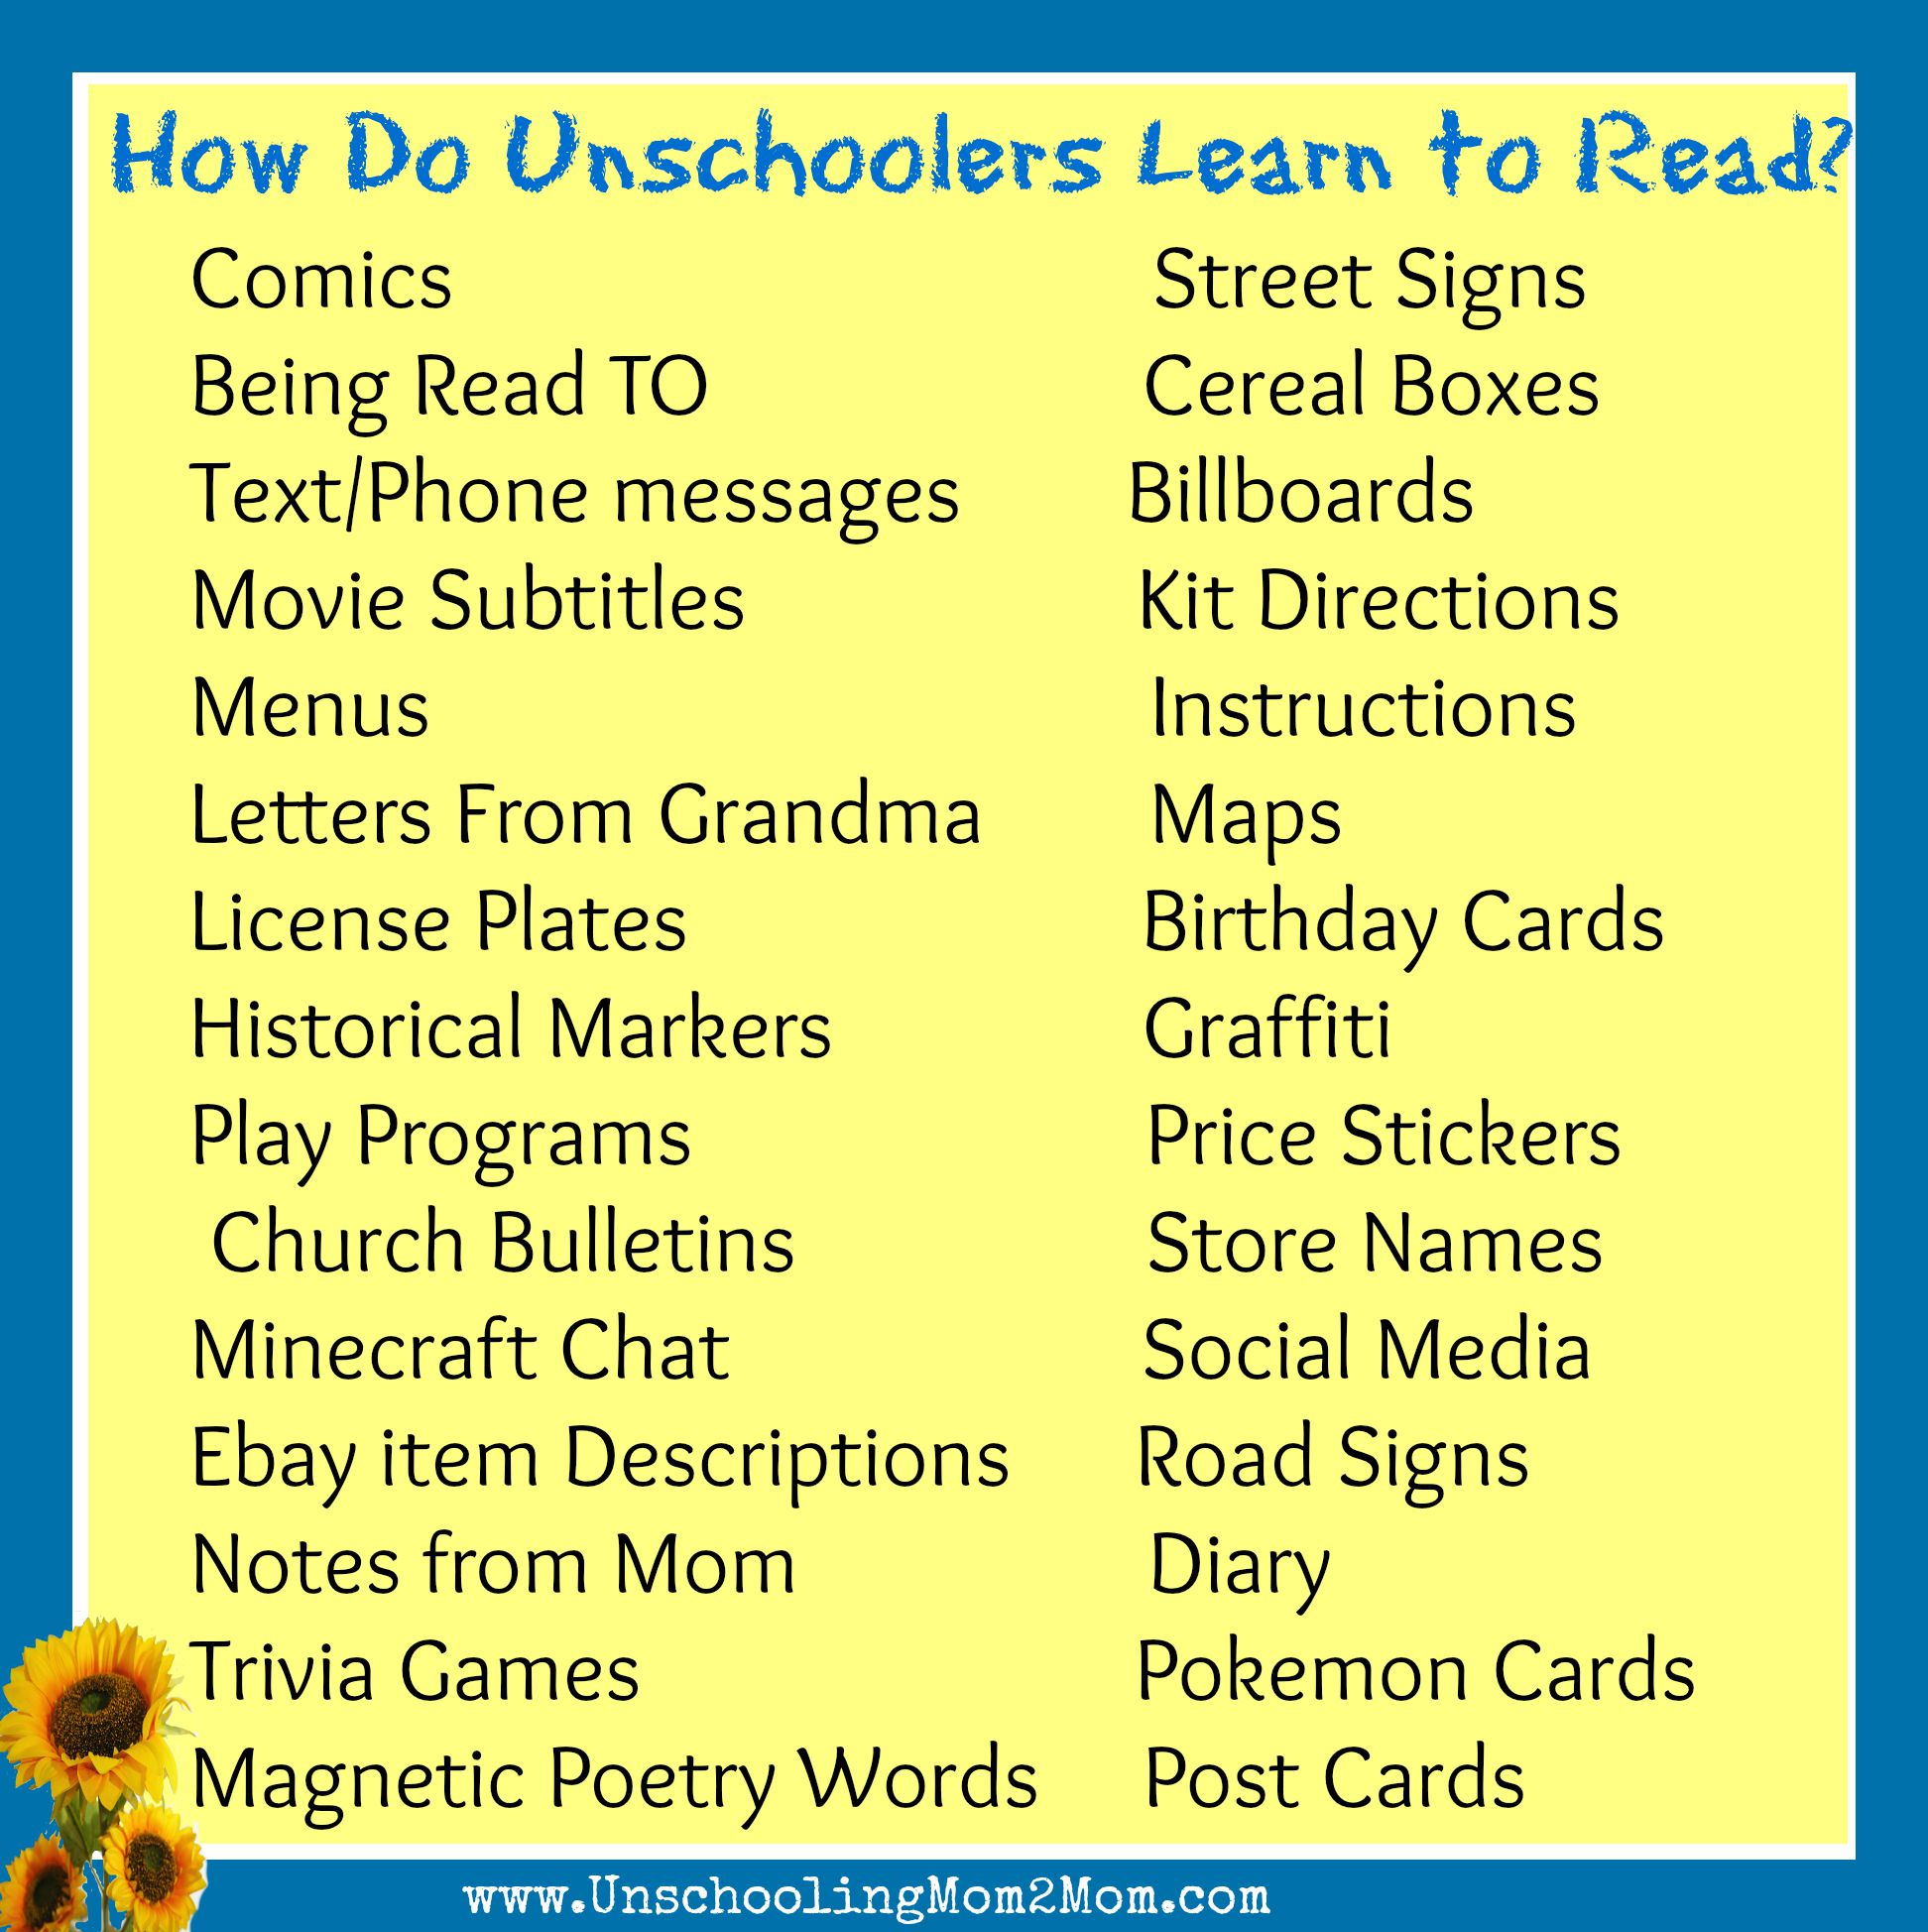 Learning to Read – Unschooling Mom18Mom